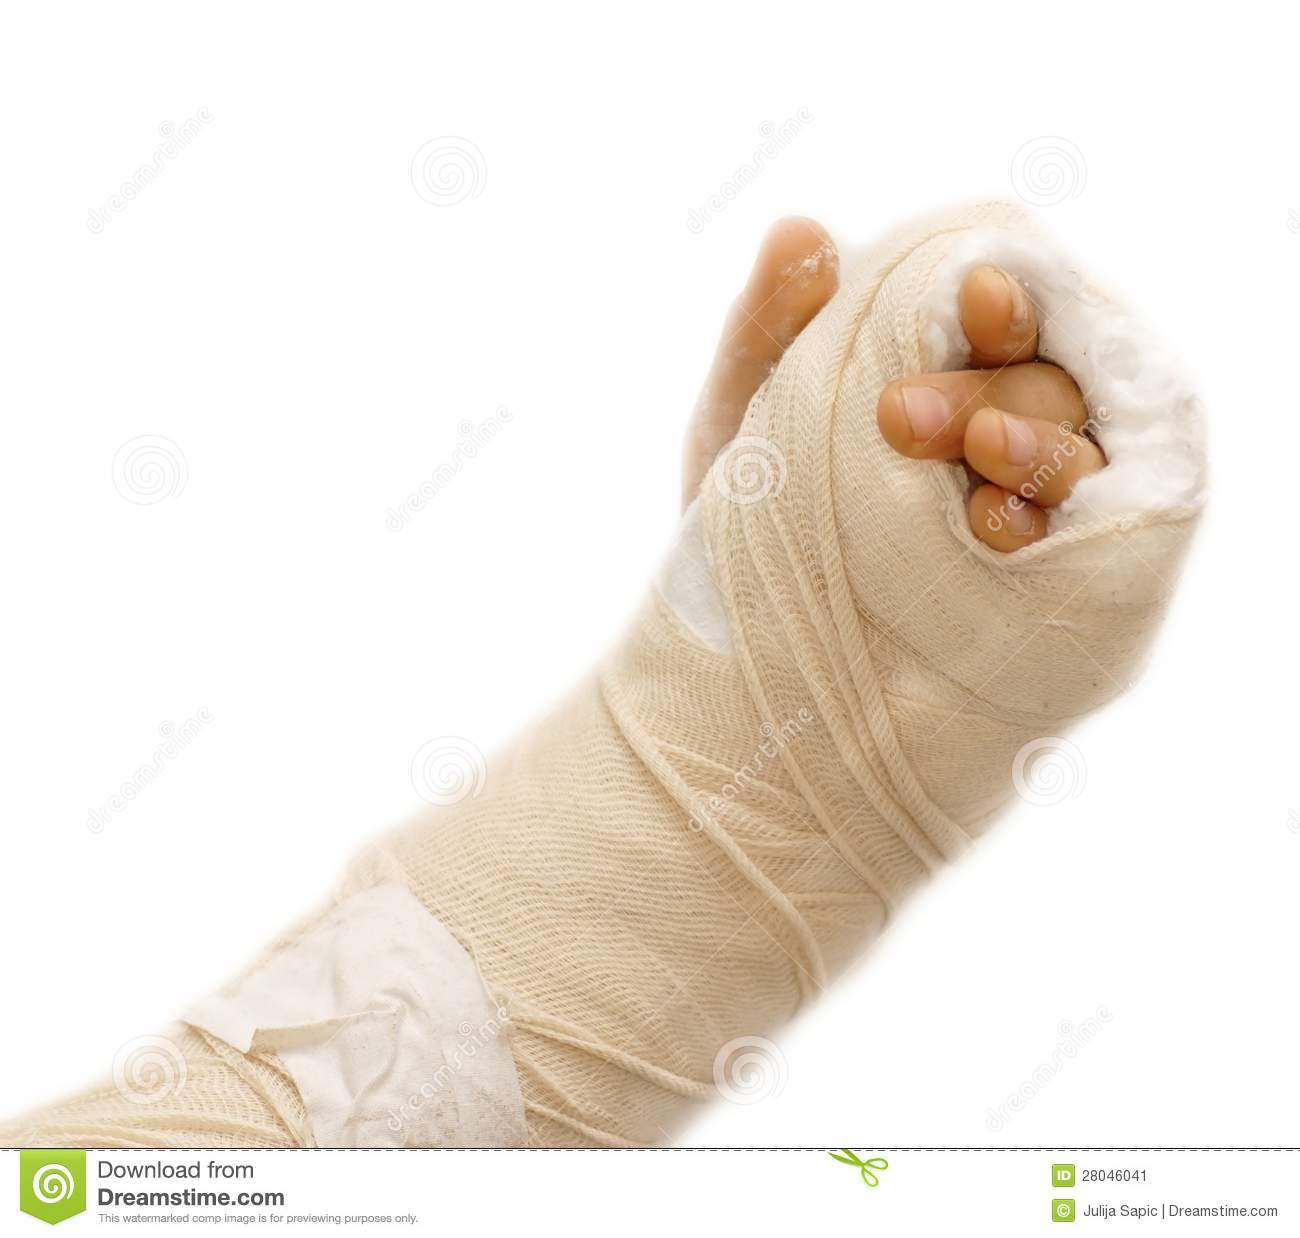 Broken arm bone in a cast and bandages over white background isolated.